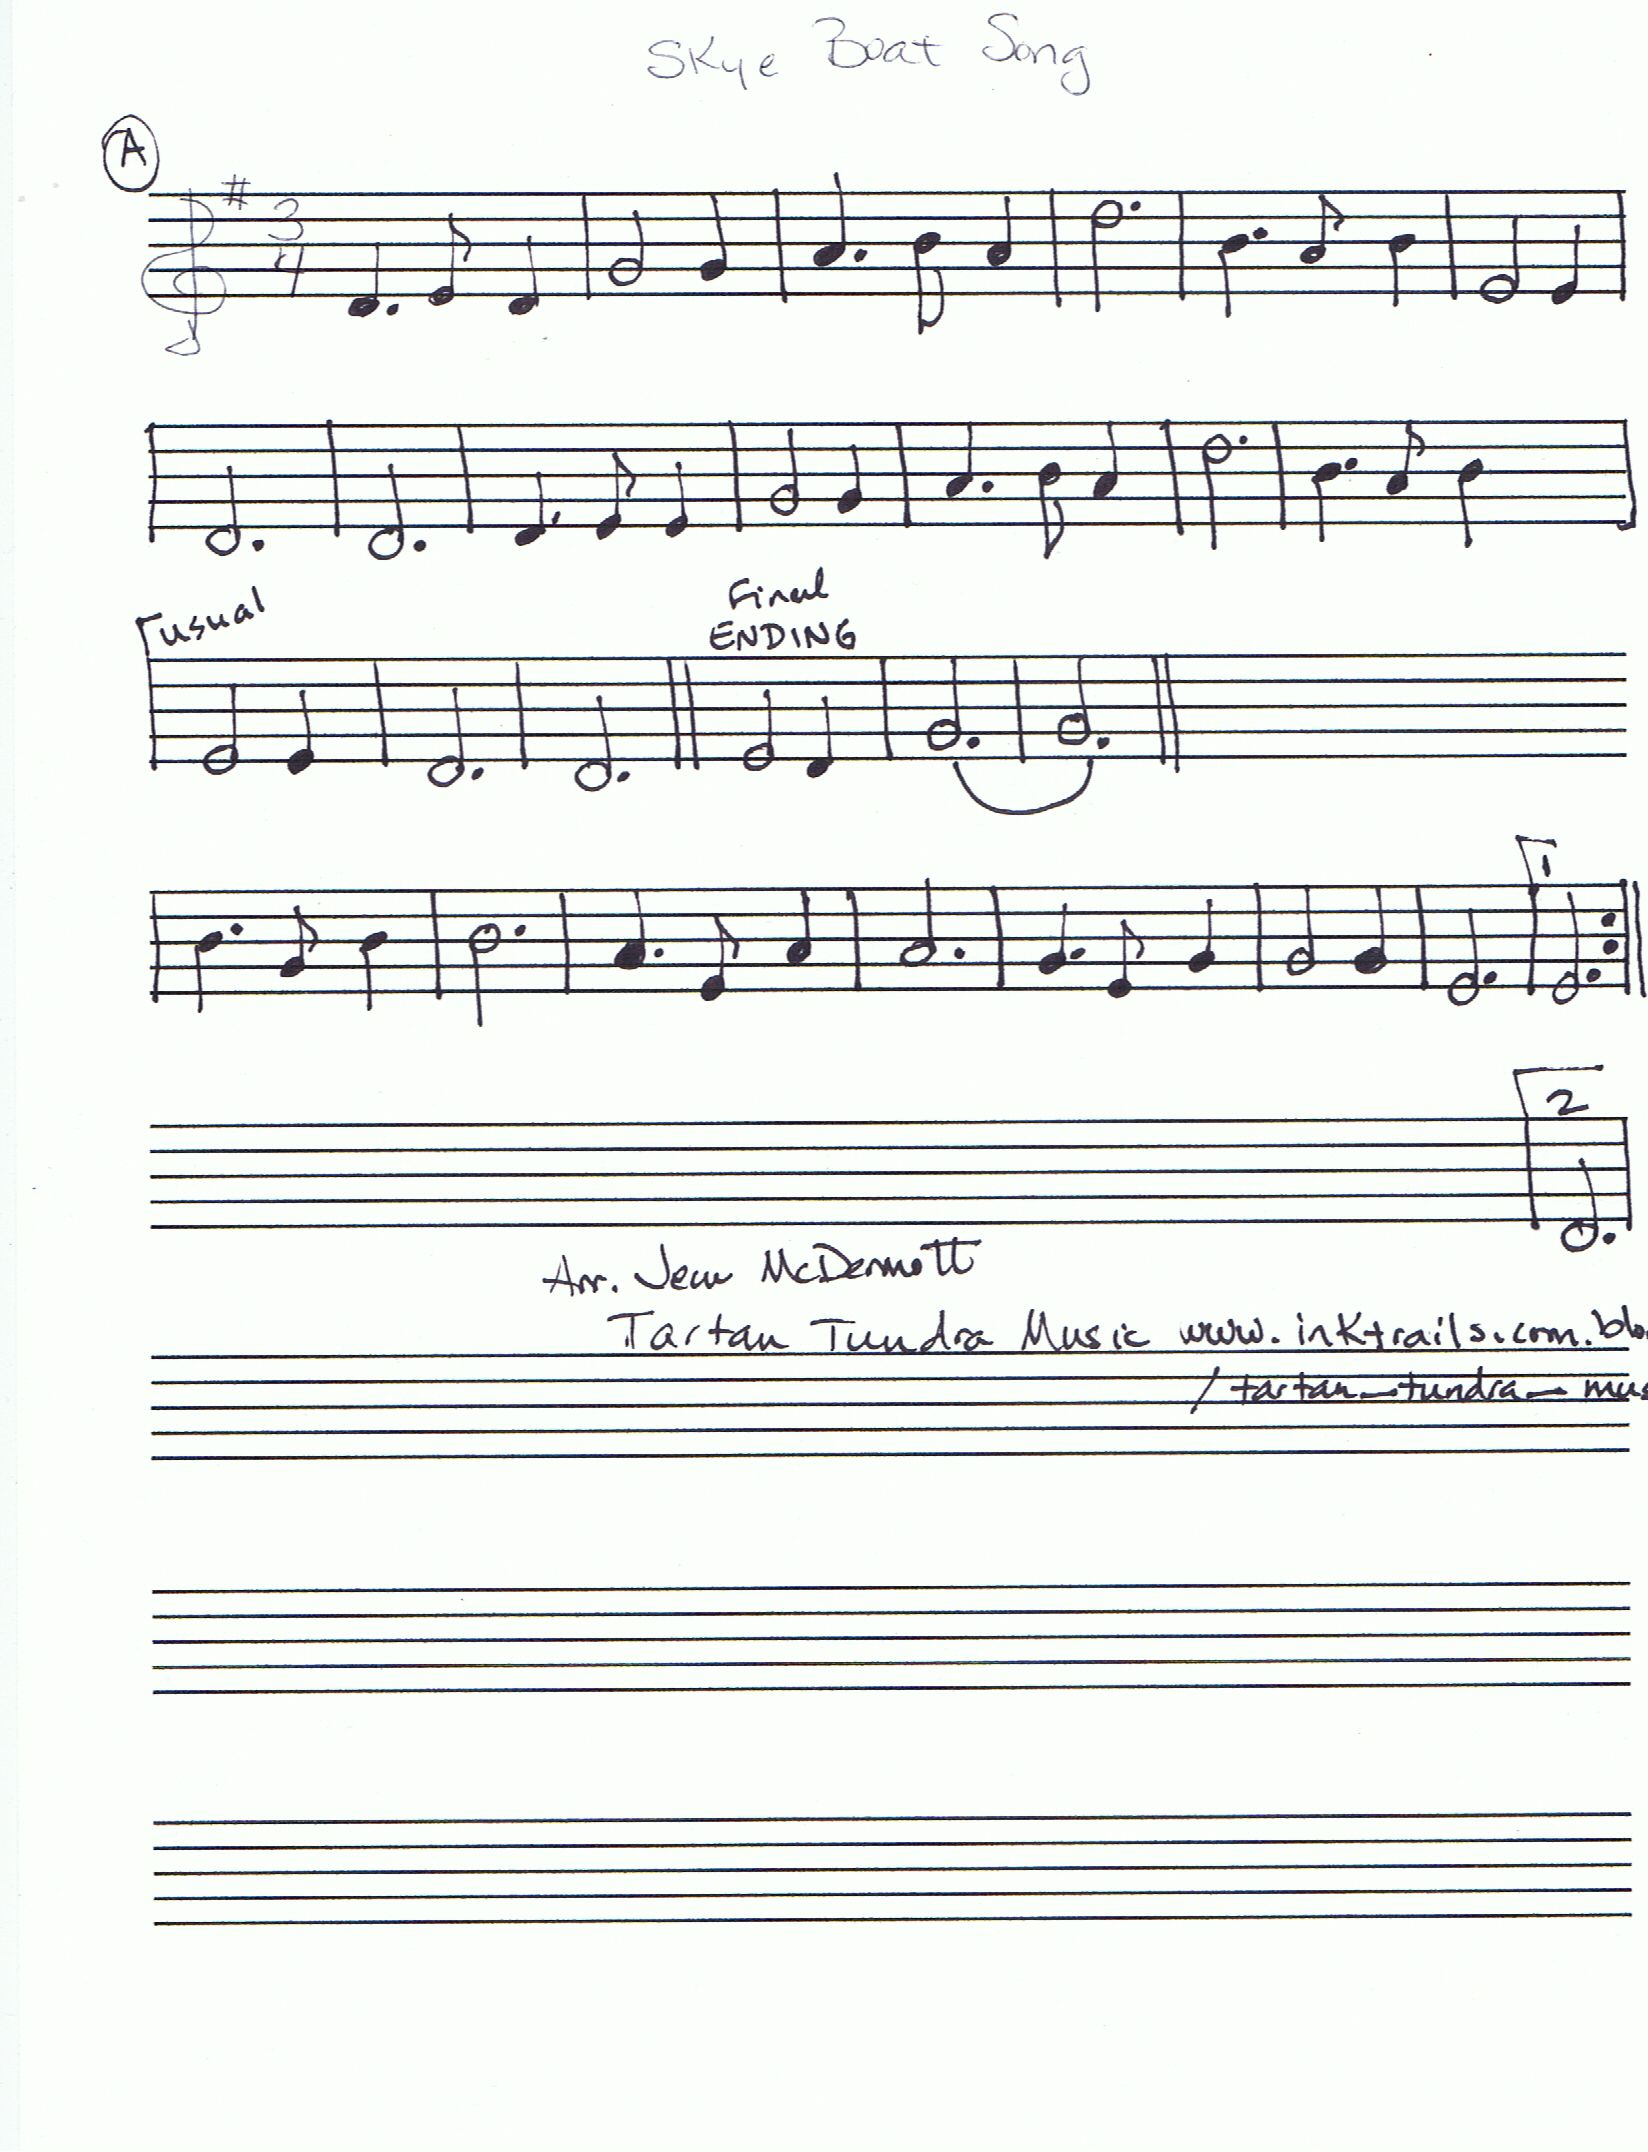 Sheet music from tartan tundra tunes and songs to download skye boat song 3465k hexwebz Image collections